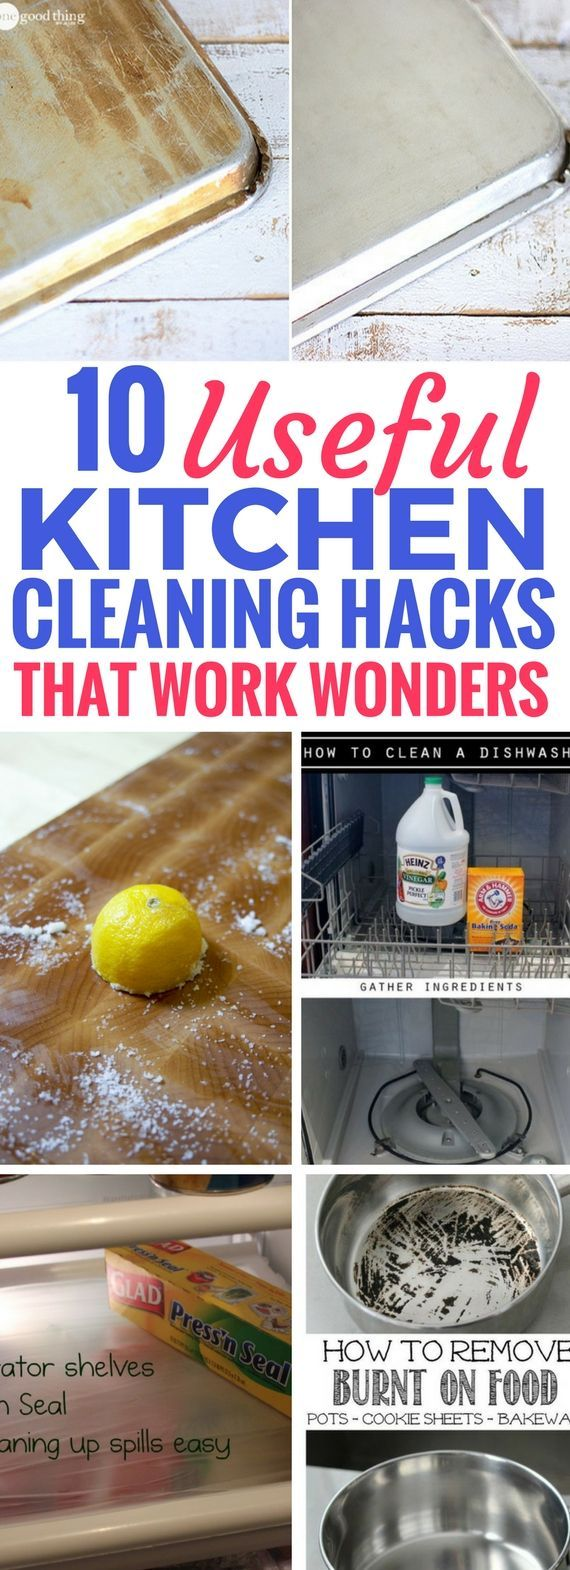 Totally loving this kitchen cleaning hacks post that takes you through the BEST ways to clean your kitchen and show you some neat cleaning hacks you've been missing out on. Definitely worth trying these home hacks because it SAVES so much time and effort.